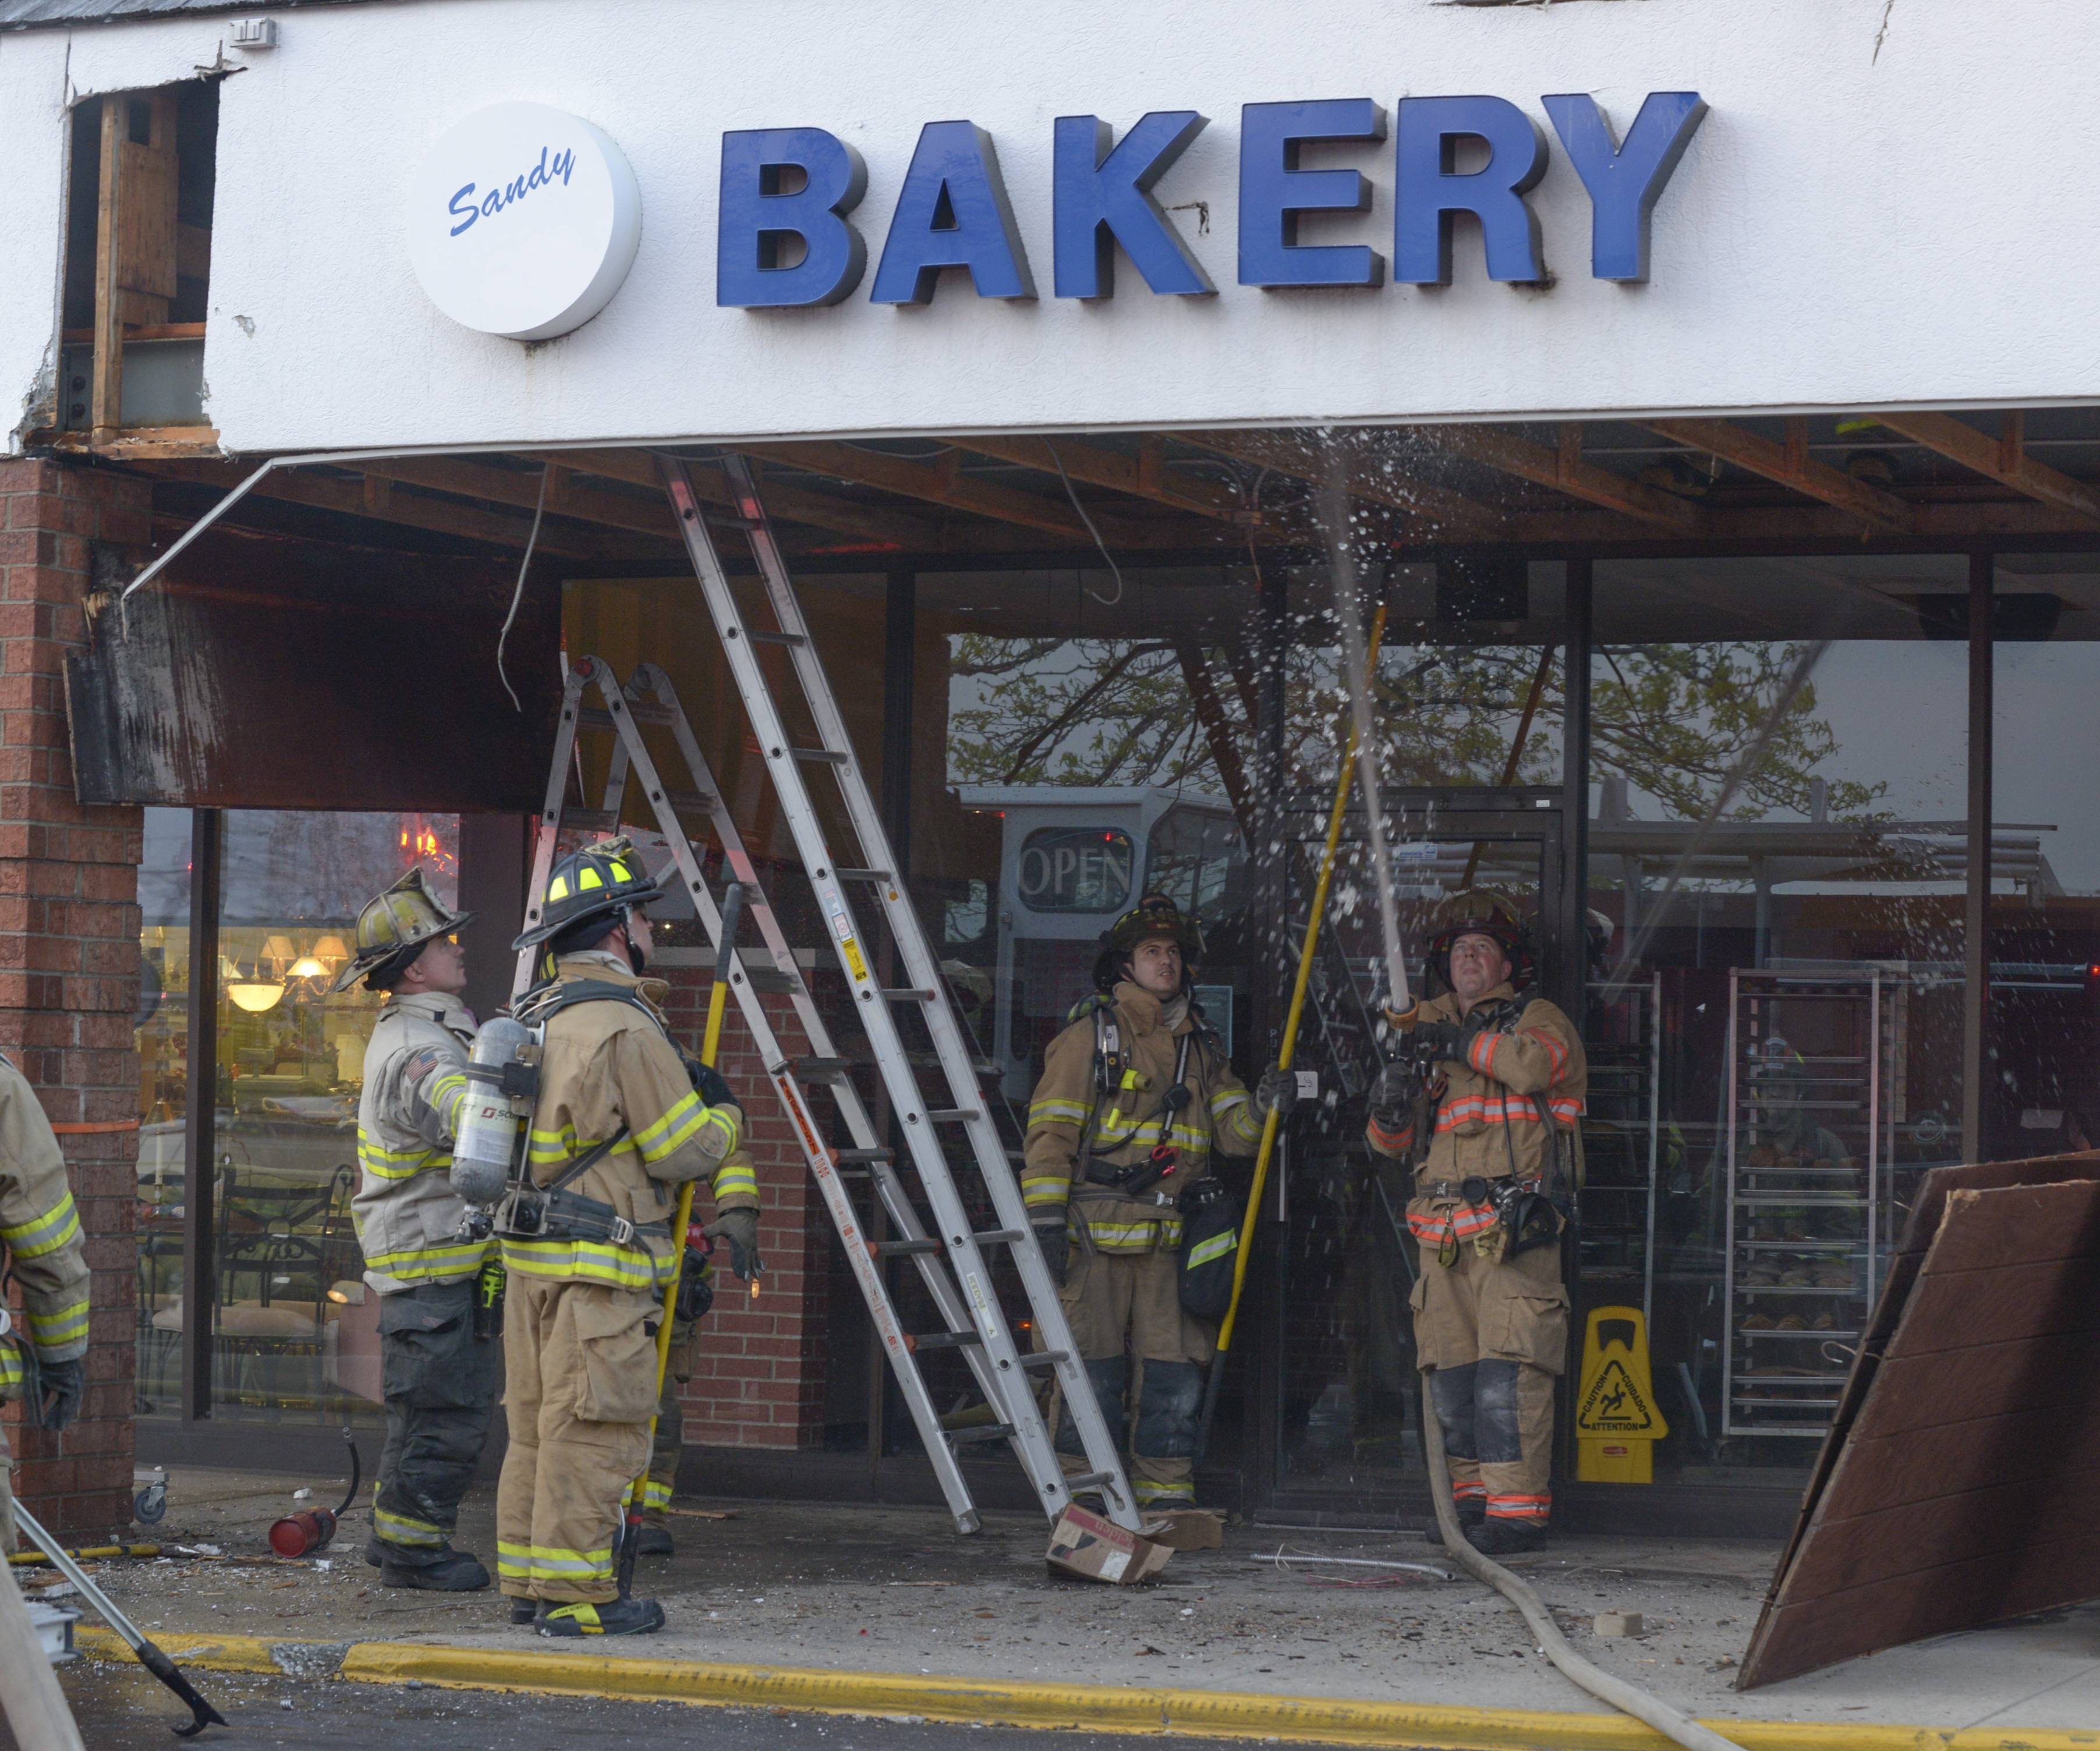 Warrenville firefighters check the rafters of the overhang in front of Sandy's Bakery at the intersection of Route 59 and Batavia Roads in Warrenville, Thursday evening.